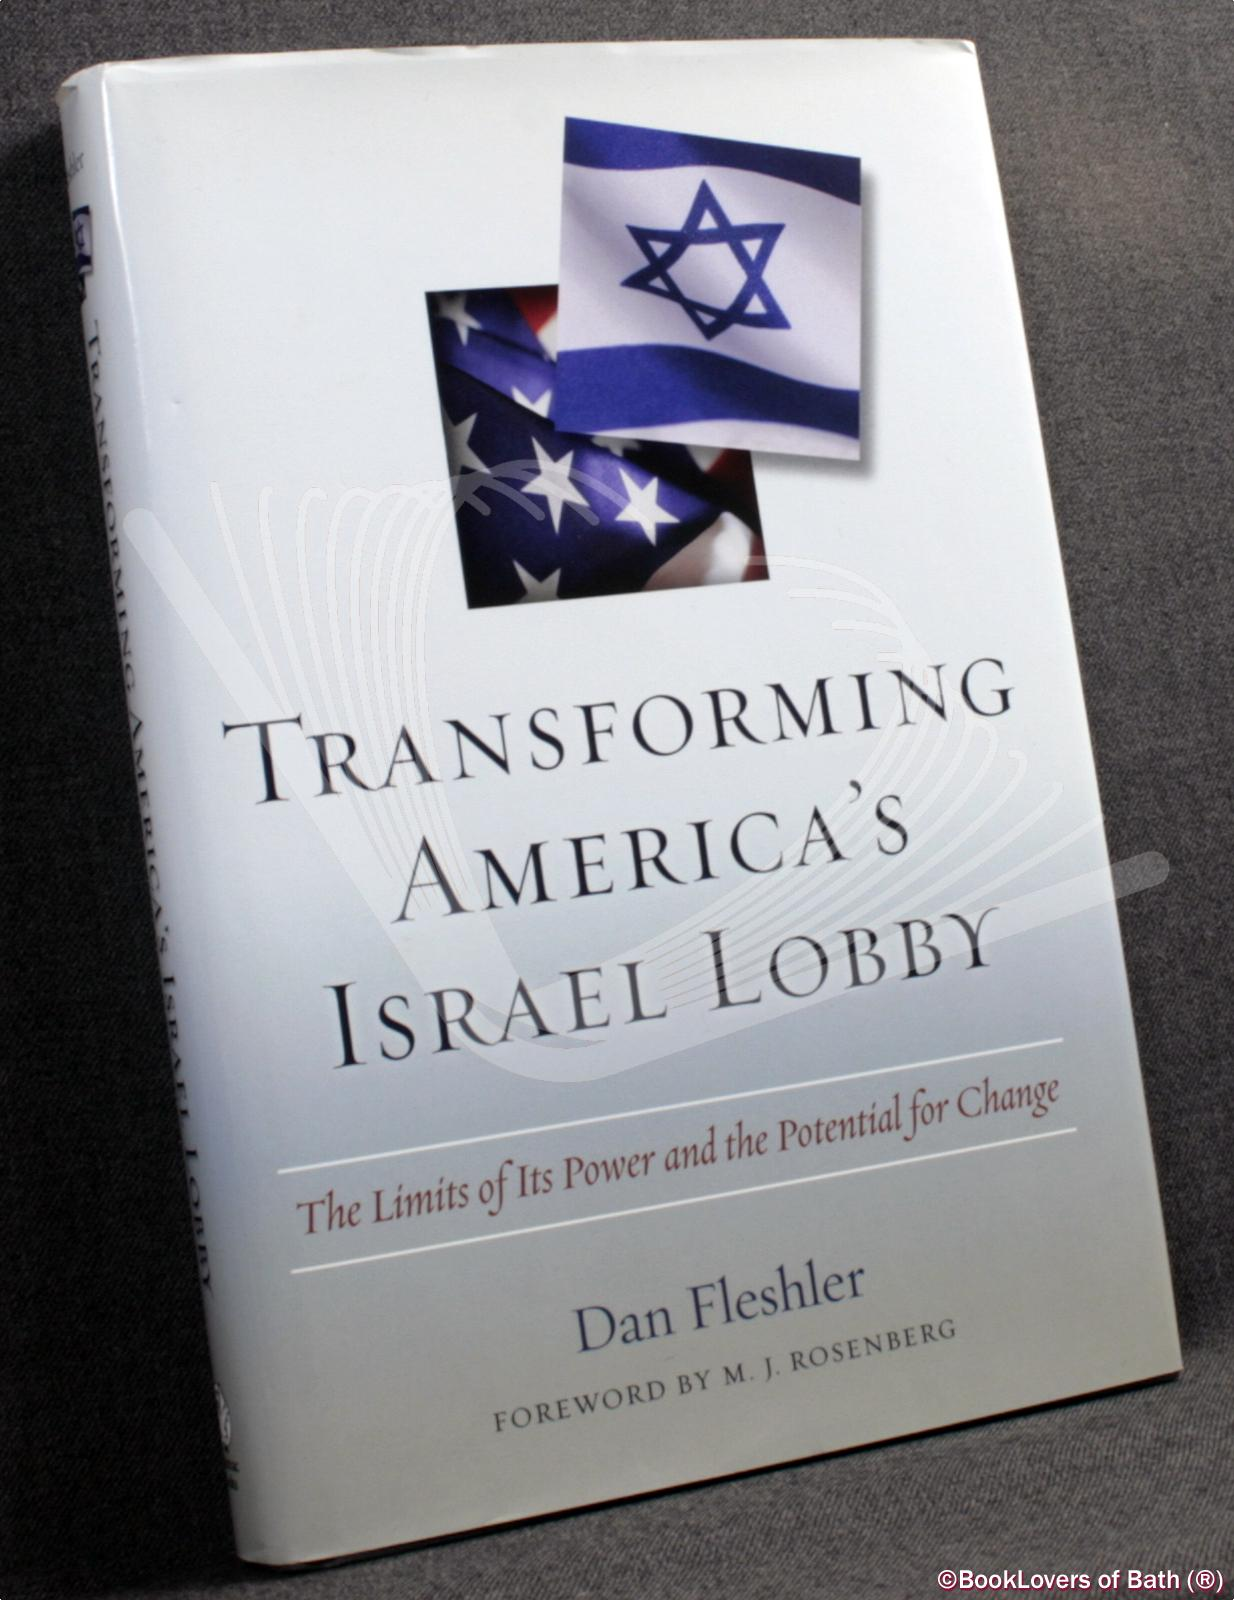 Transforming America's Israel Lobby: The Limits of Its Power and the Potential for Change - Dan Fleshler